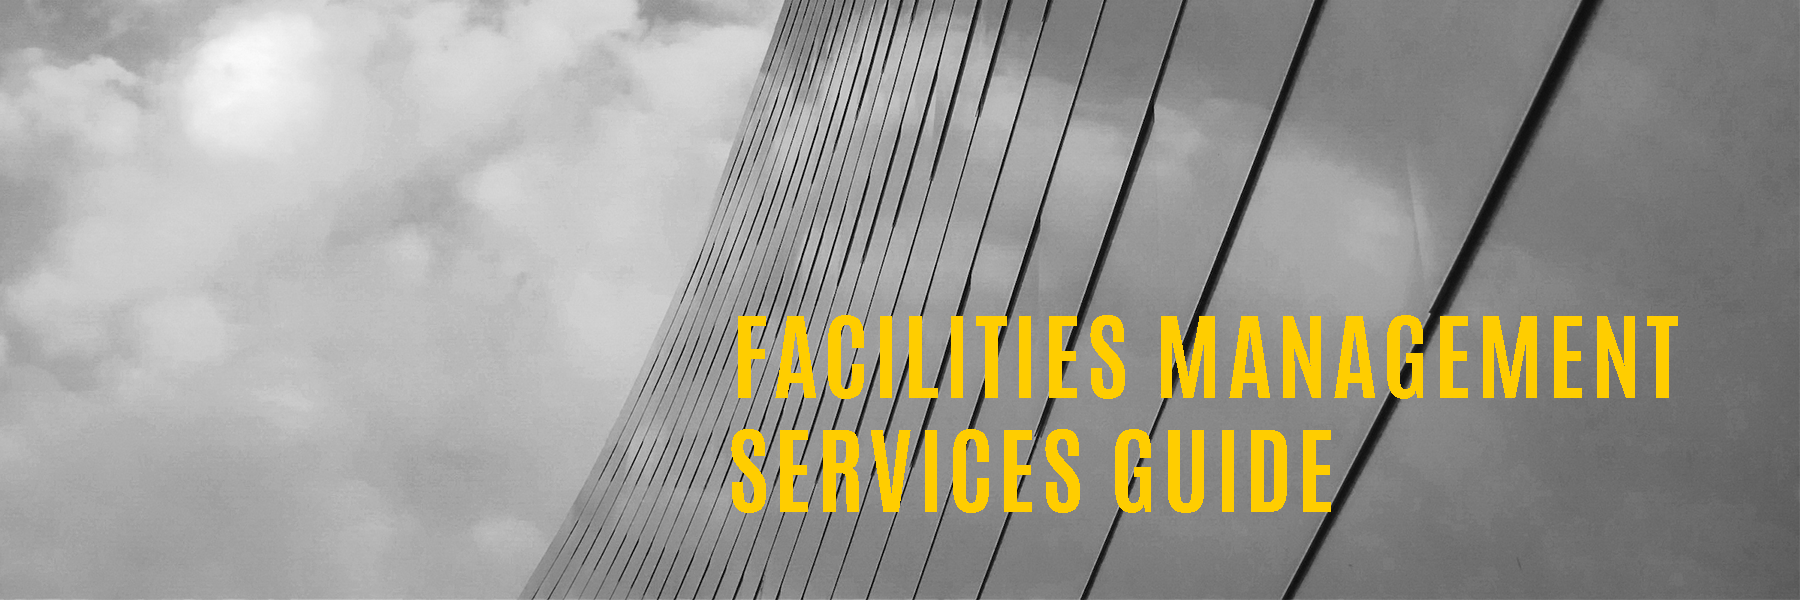 Facilities Management Services Guide header